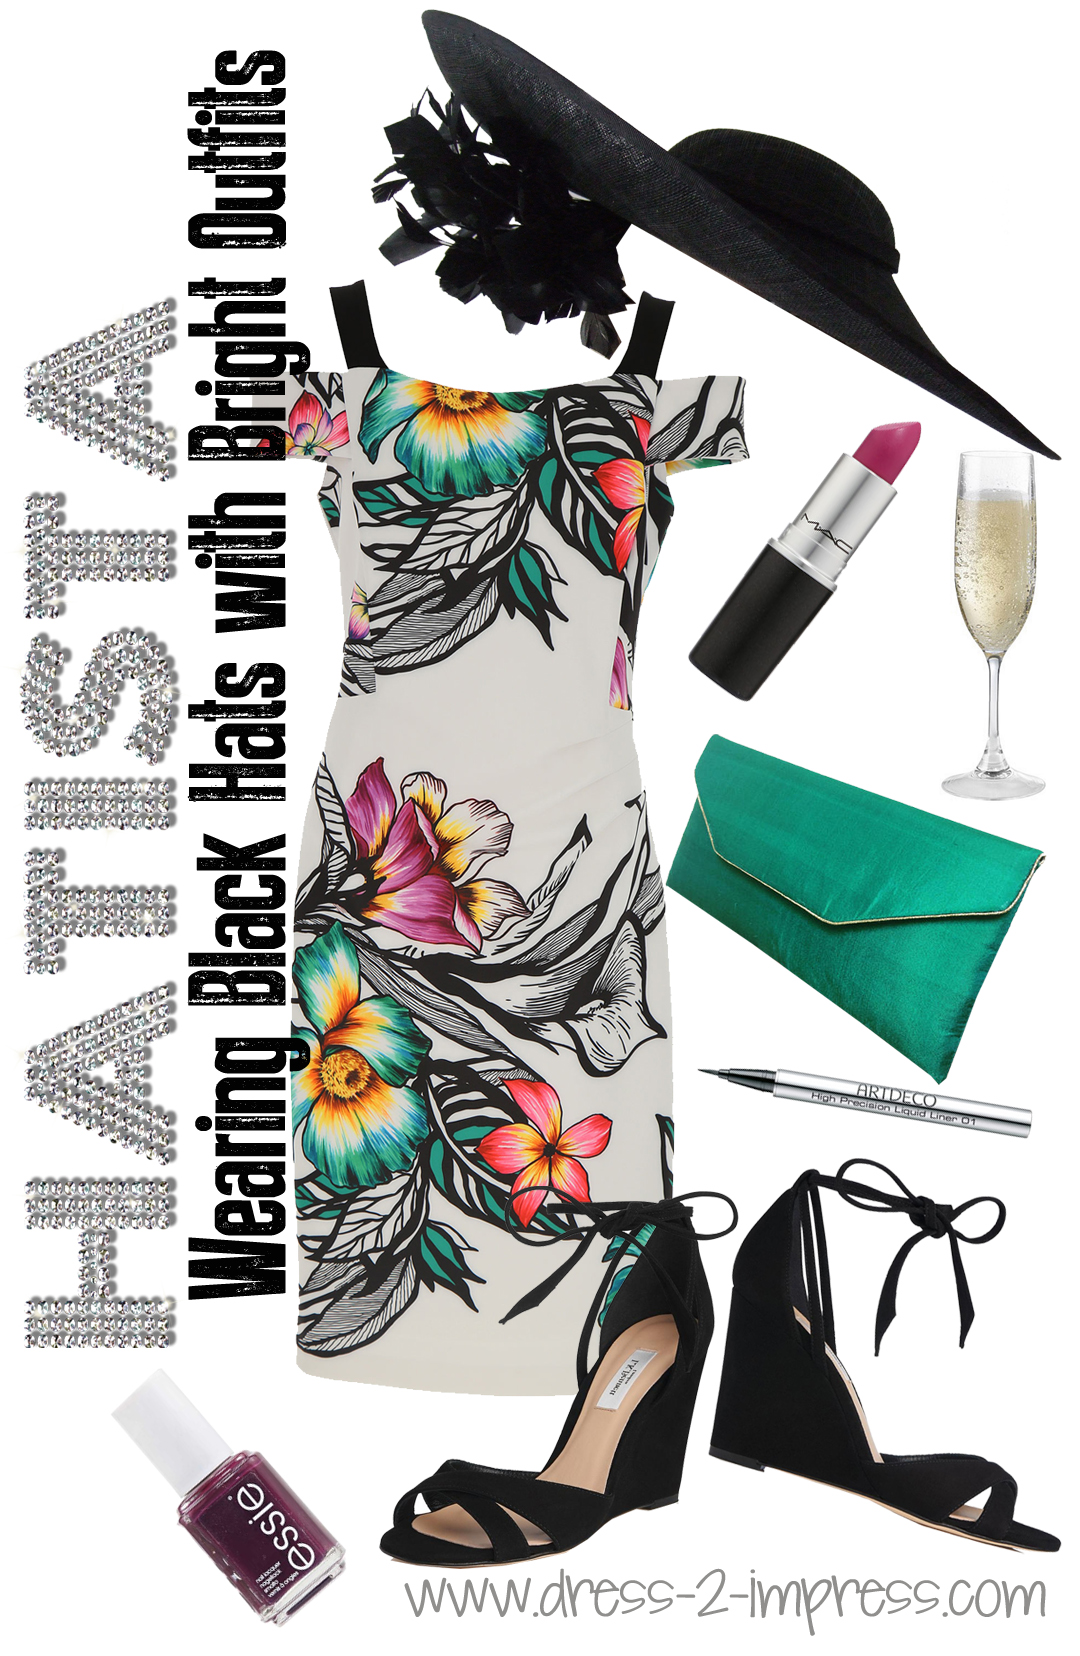 Bold Floral Prints and Black Hat, outfit ideas and Tips on what to wear to Royal Ascot - Need outfit inspiration ideas for what to wear for the races or summer weddings? Royal Ascot Style Guide 2018. Floral outfits. Read blog from THE HATISTA www.dress-2-impress.com #floraloutfits #fashionista #ladiesday #epsomderby #kentuckyderby #royalascot Outfit Ideas for Epsom Derby or Royal Ascot, Ladies Day at the Races